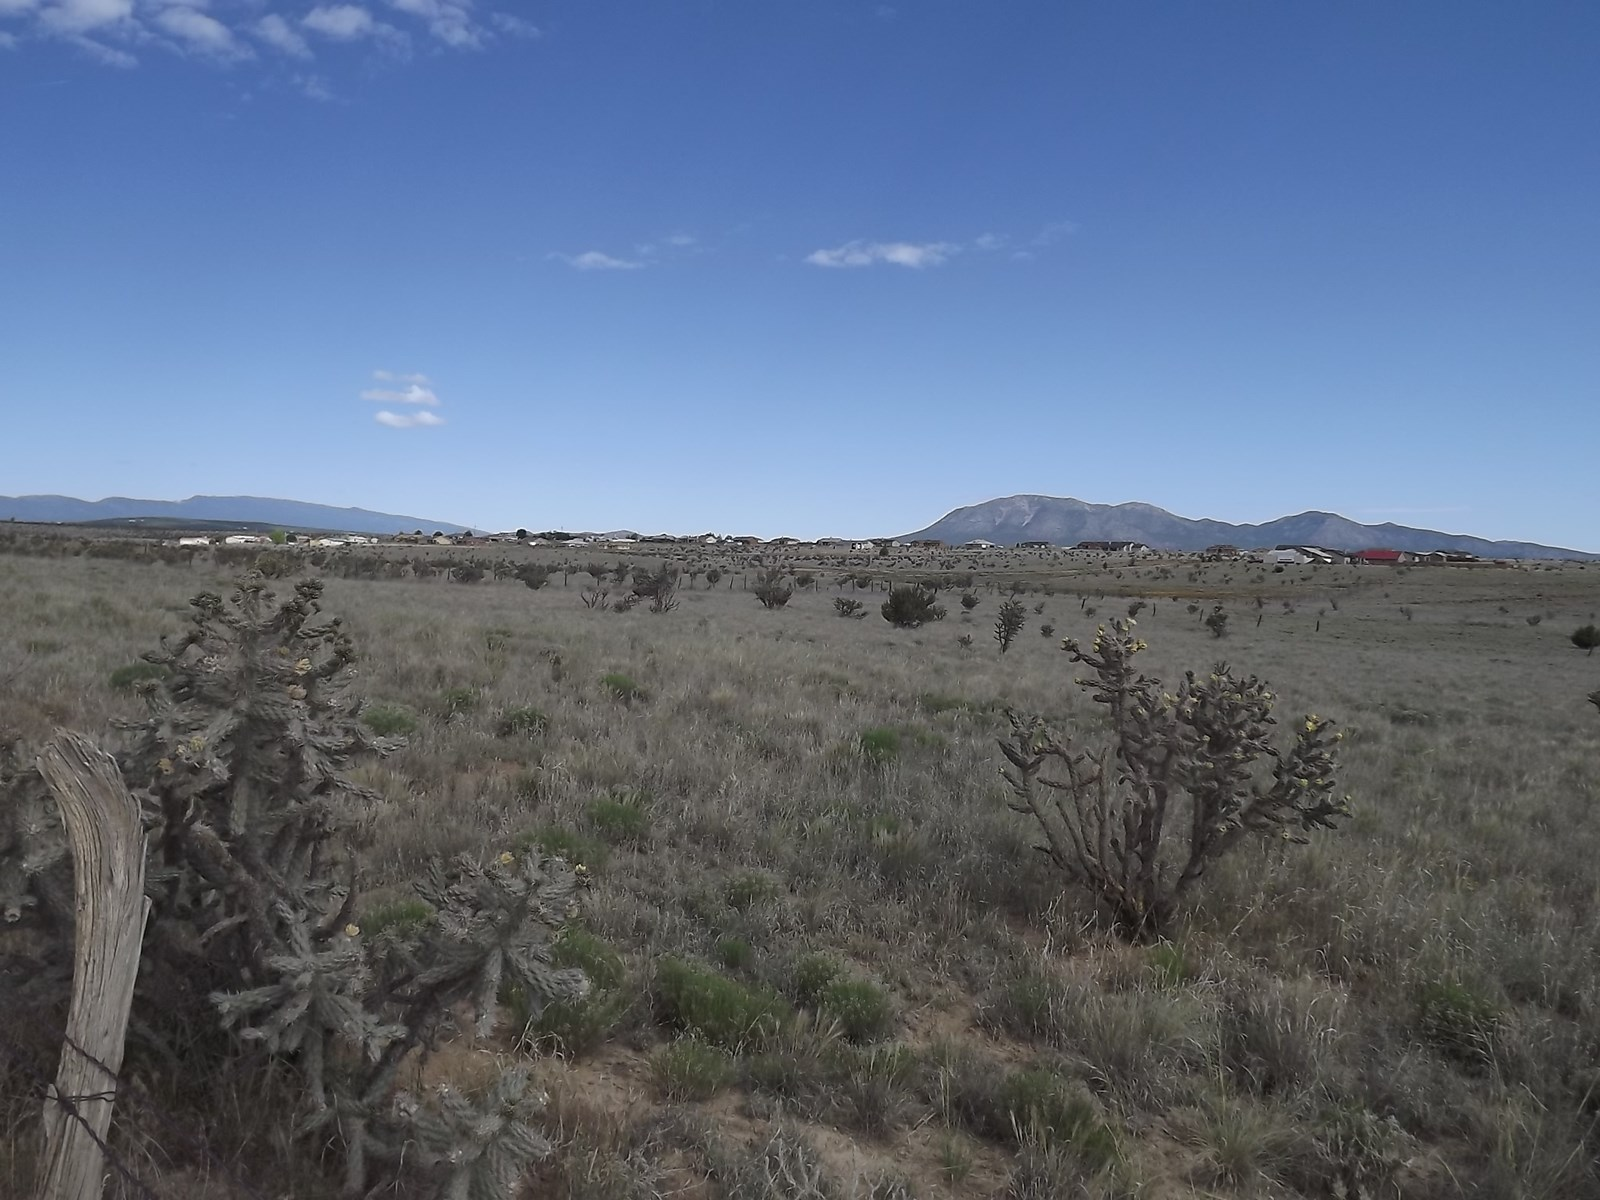 6.73 Acres For Sale In The Heart Of Edgewood New Mexico